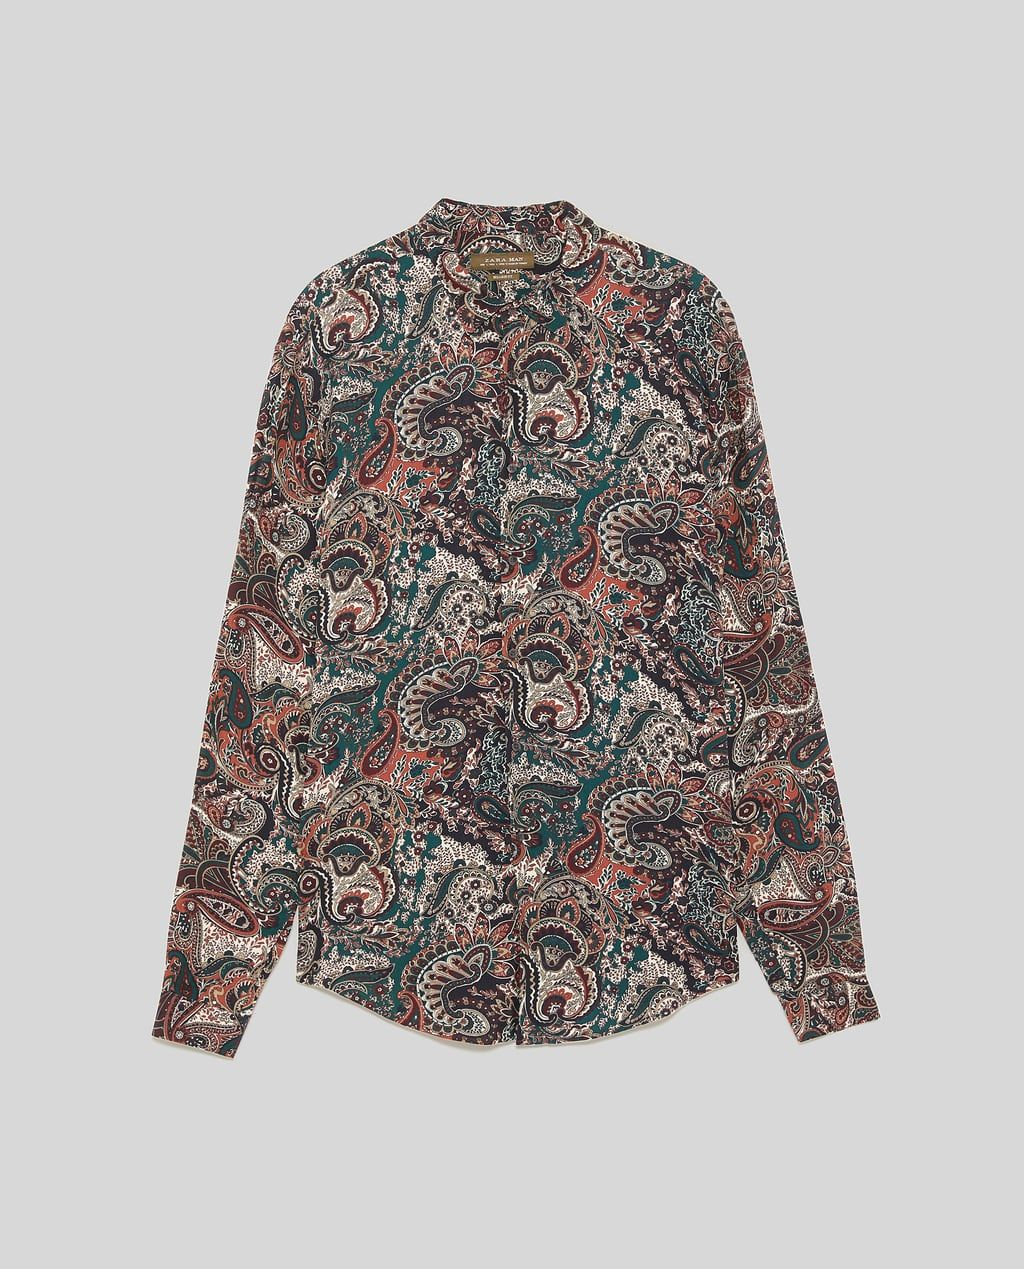 1cfdf64f Imagen 8 de CAMISA ESTAMPADO PAISLEY de Zara | MEN FASHION | Mens ...